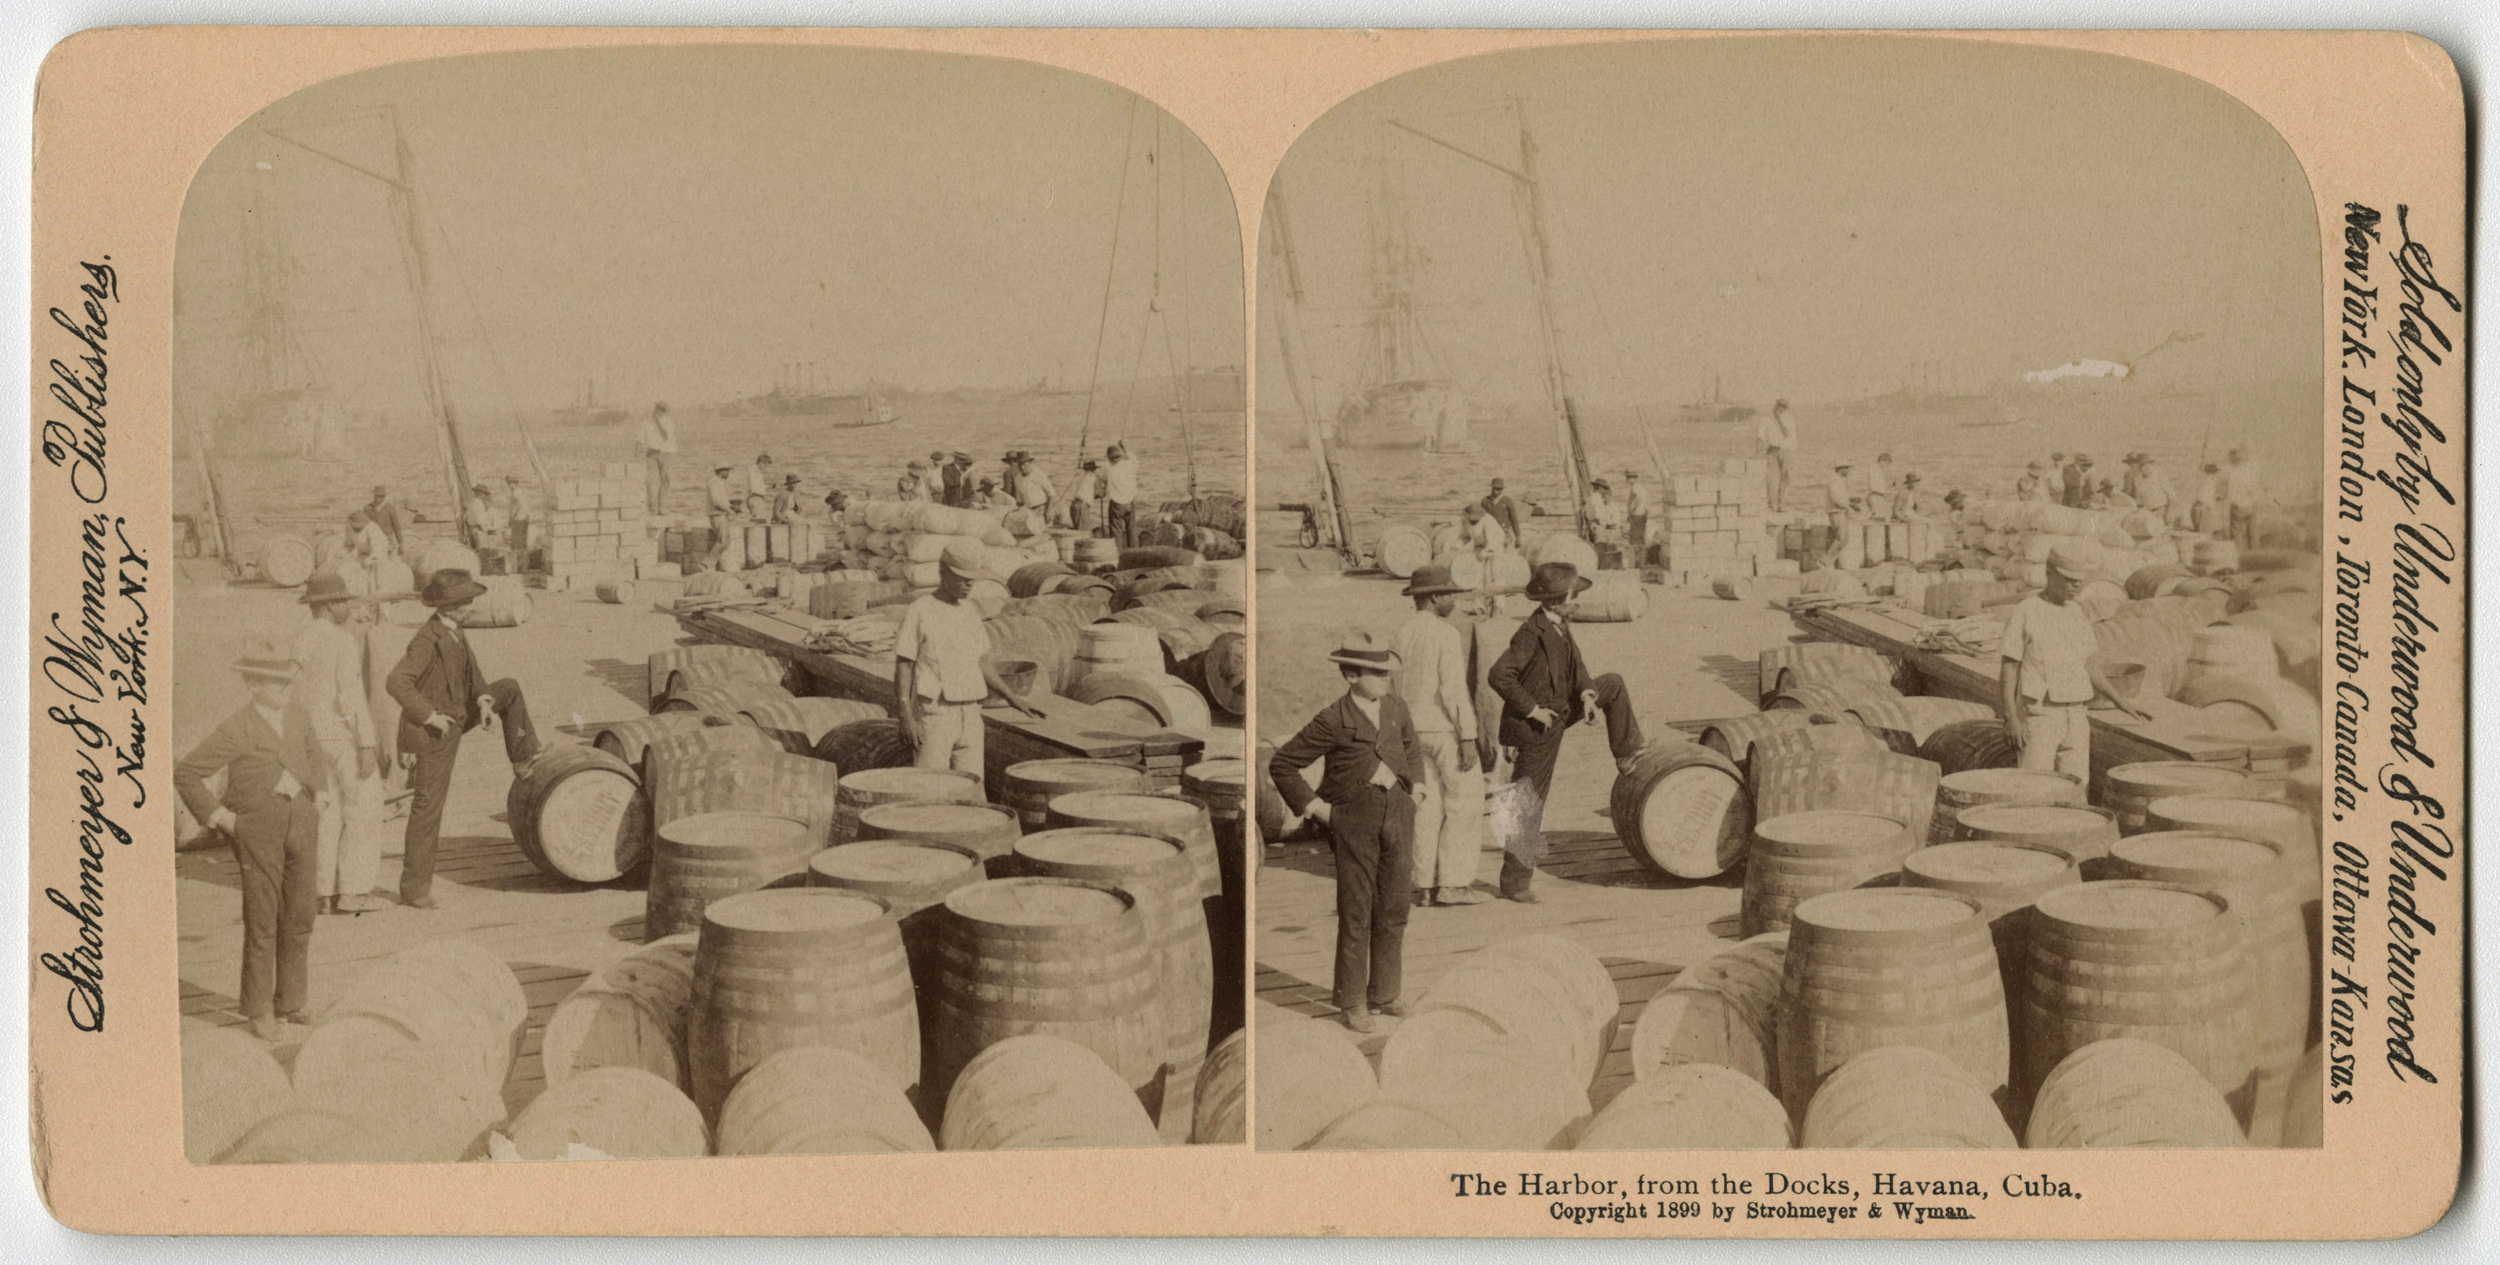 Along the docks of the Havana harbour, 1899. Found in the Cuban Photograph Collection by the  University of Miami Libraries . Image Public Domain.